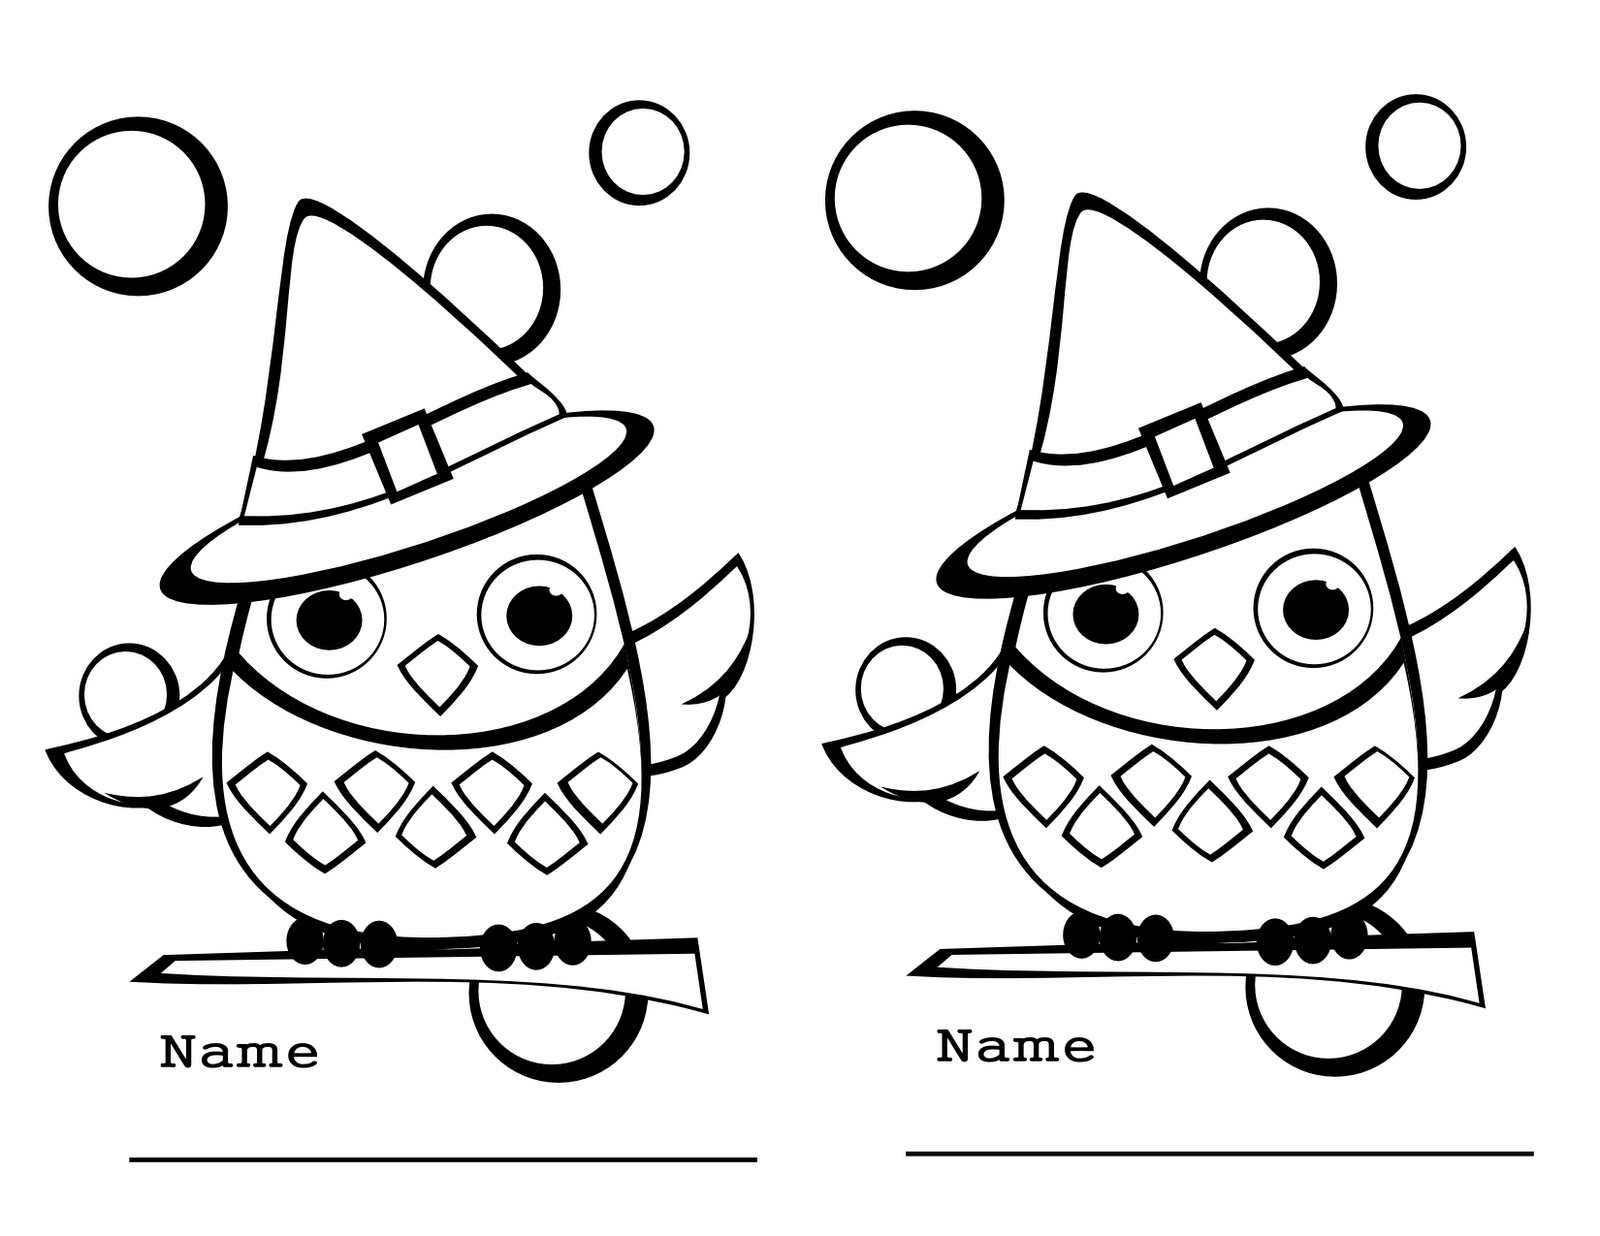 On online owl coloring pages - Fr Free Coloring Pages For Owls Free Coloring Pages For Kindergarten